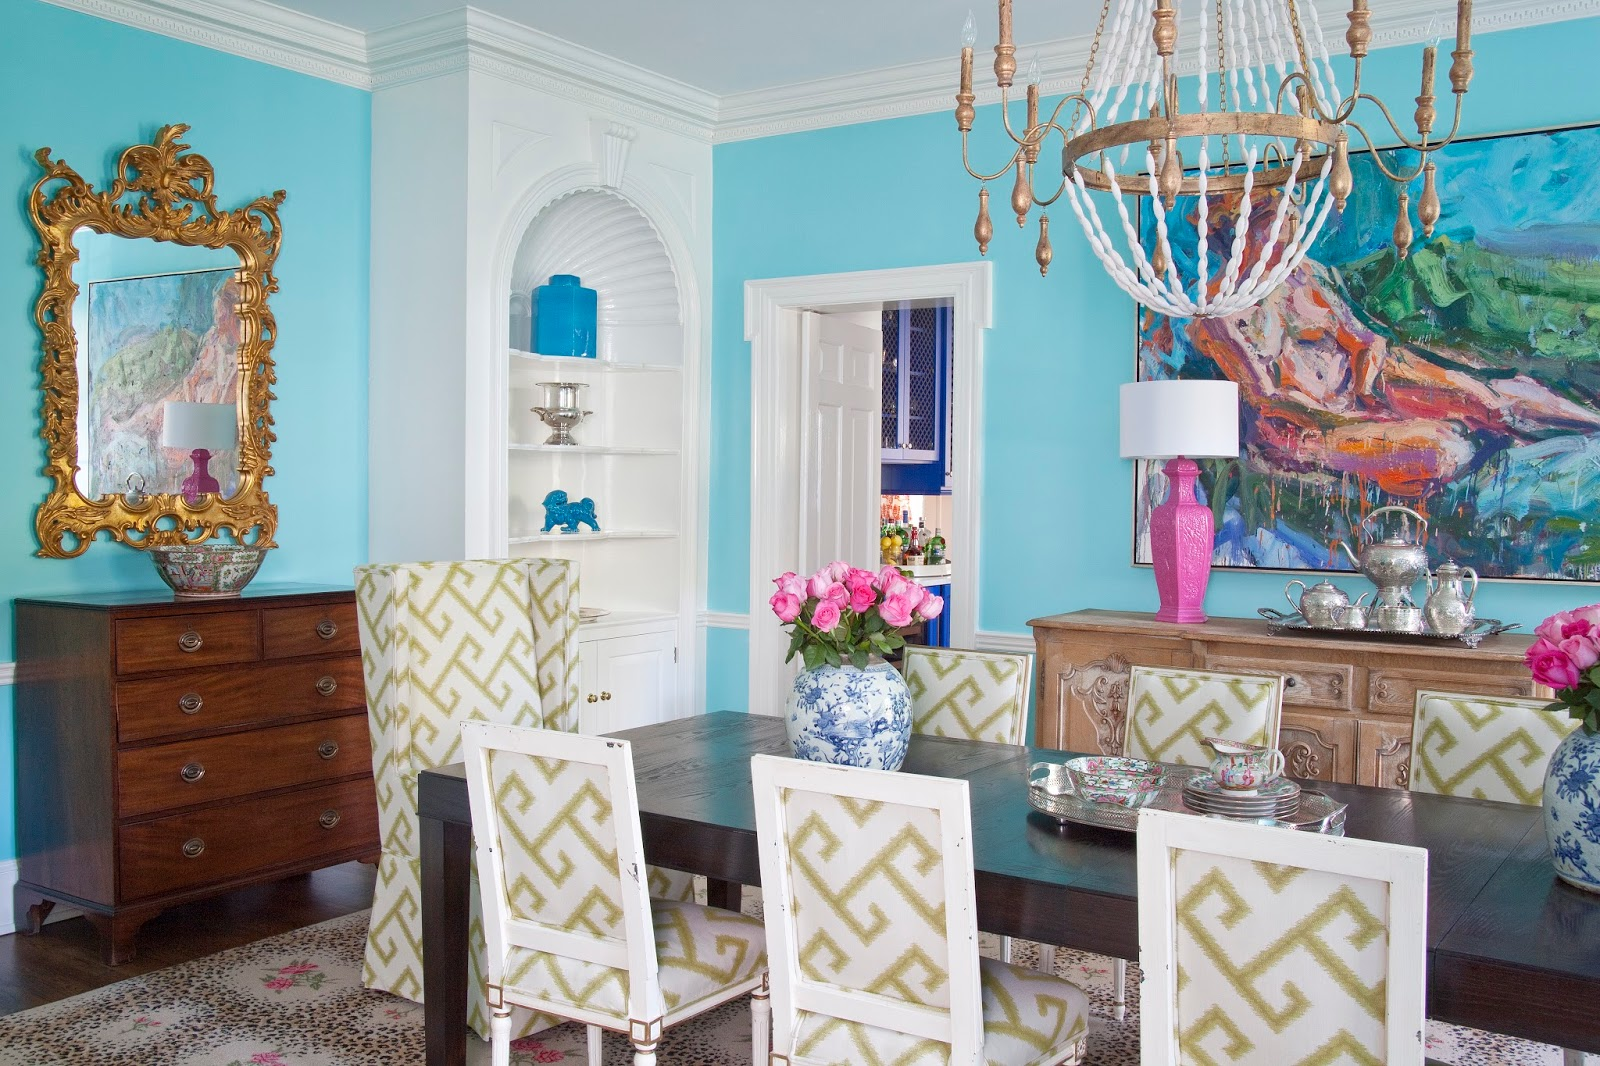 The glam pad: parker kennedy: rising stars of design